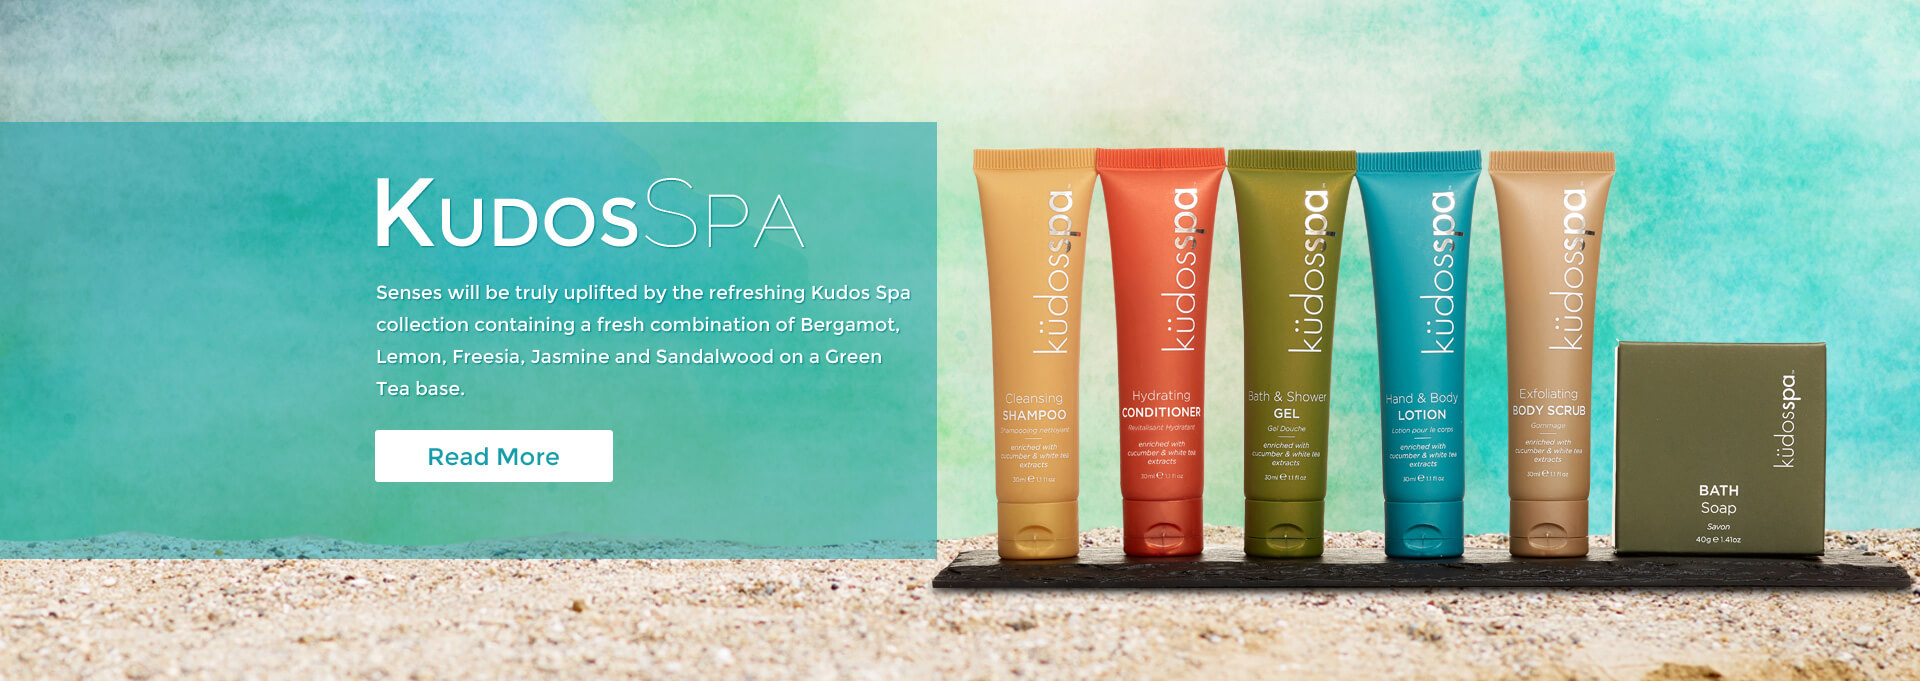 kudos spa toiletries